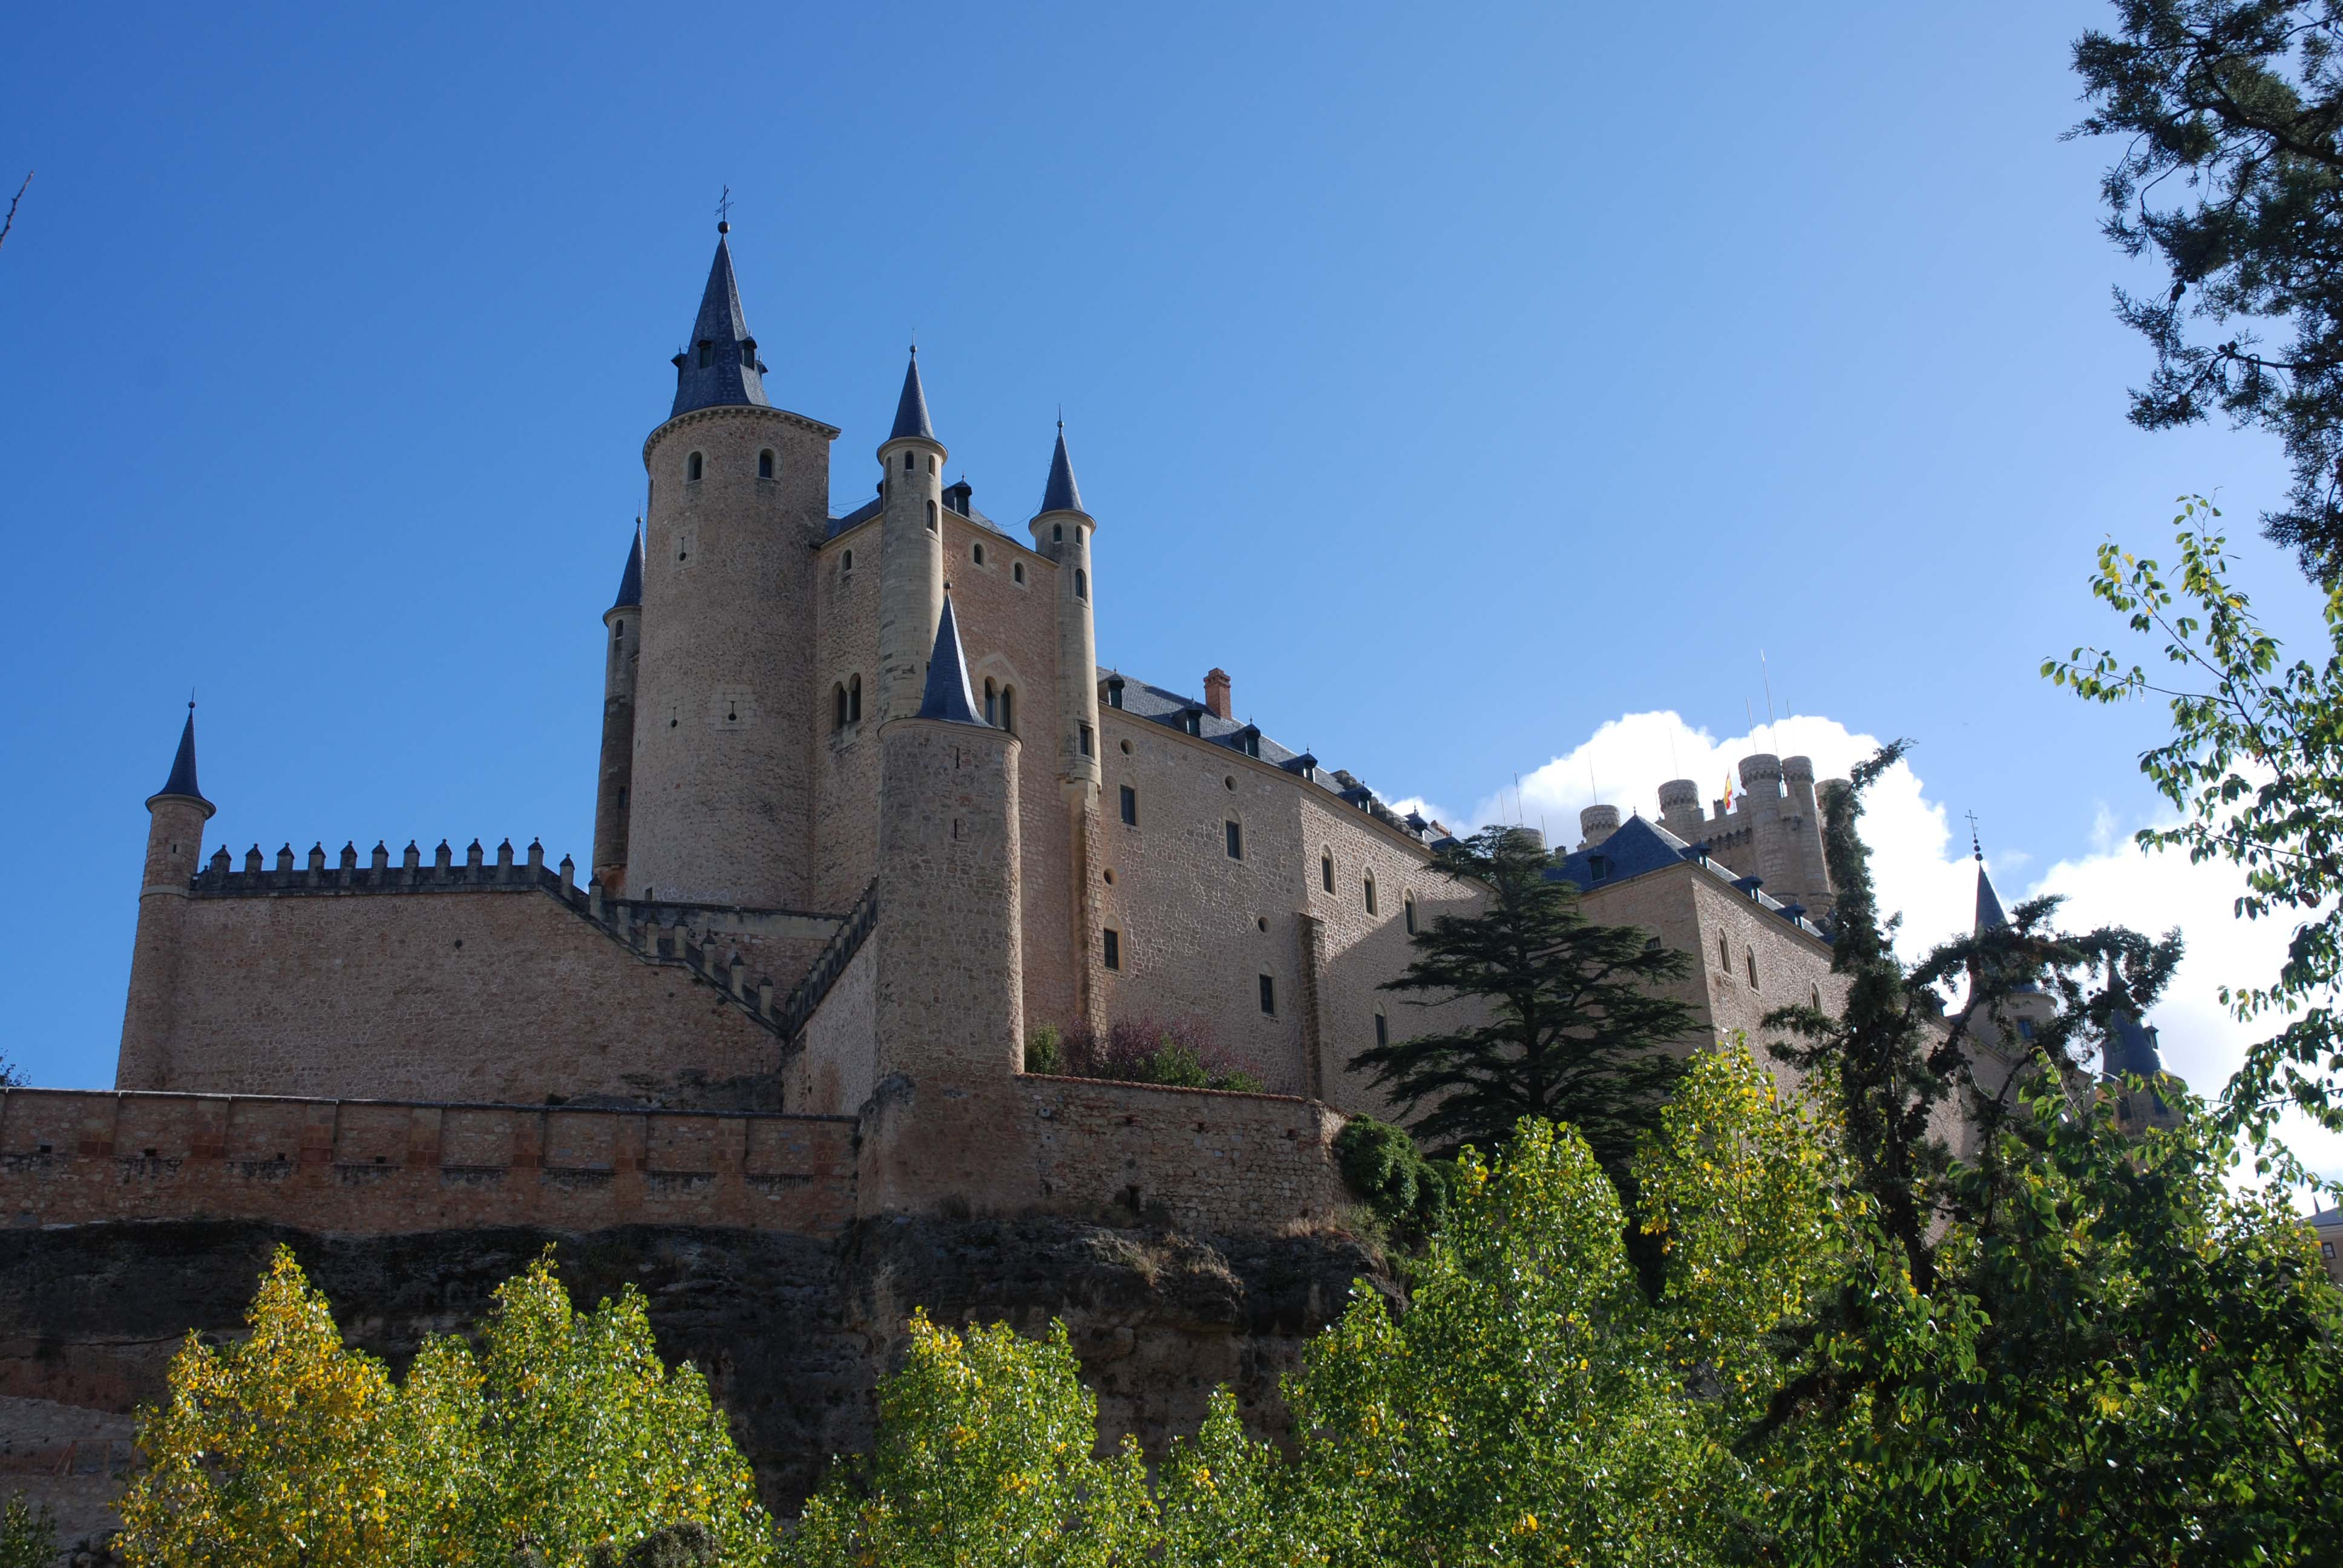 The incomparable Alcazar de Segovia